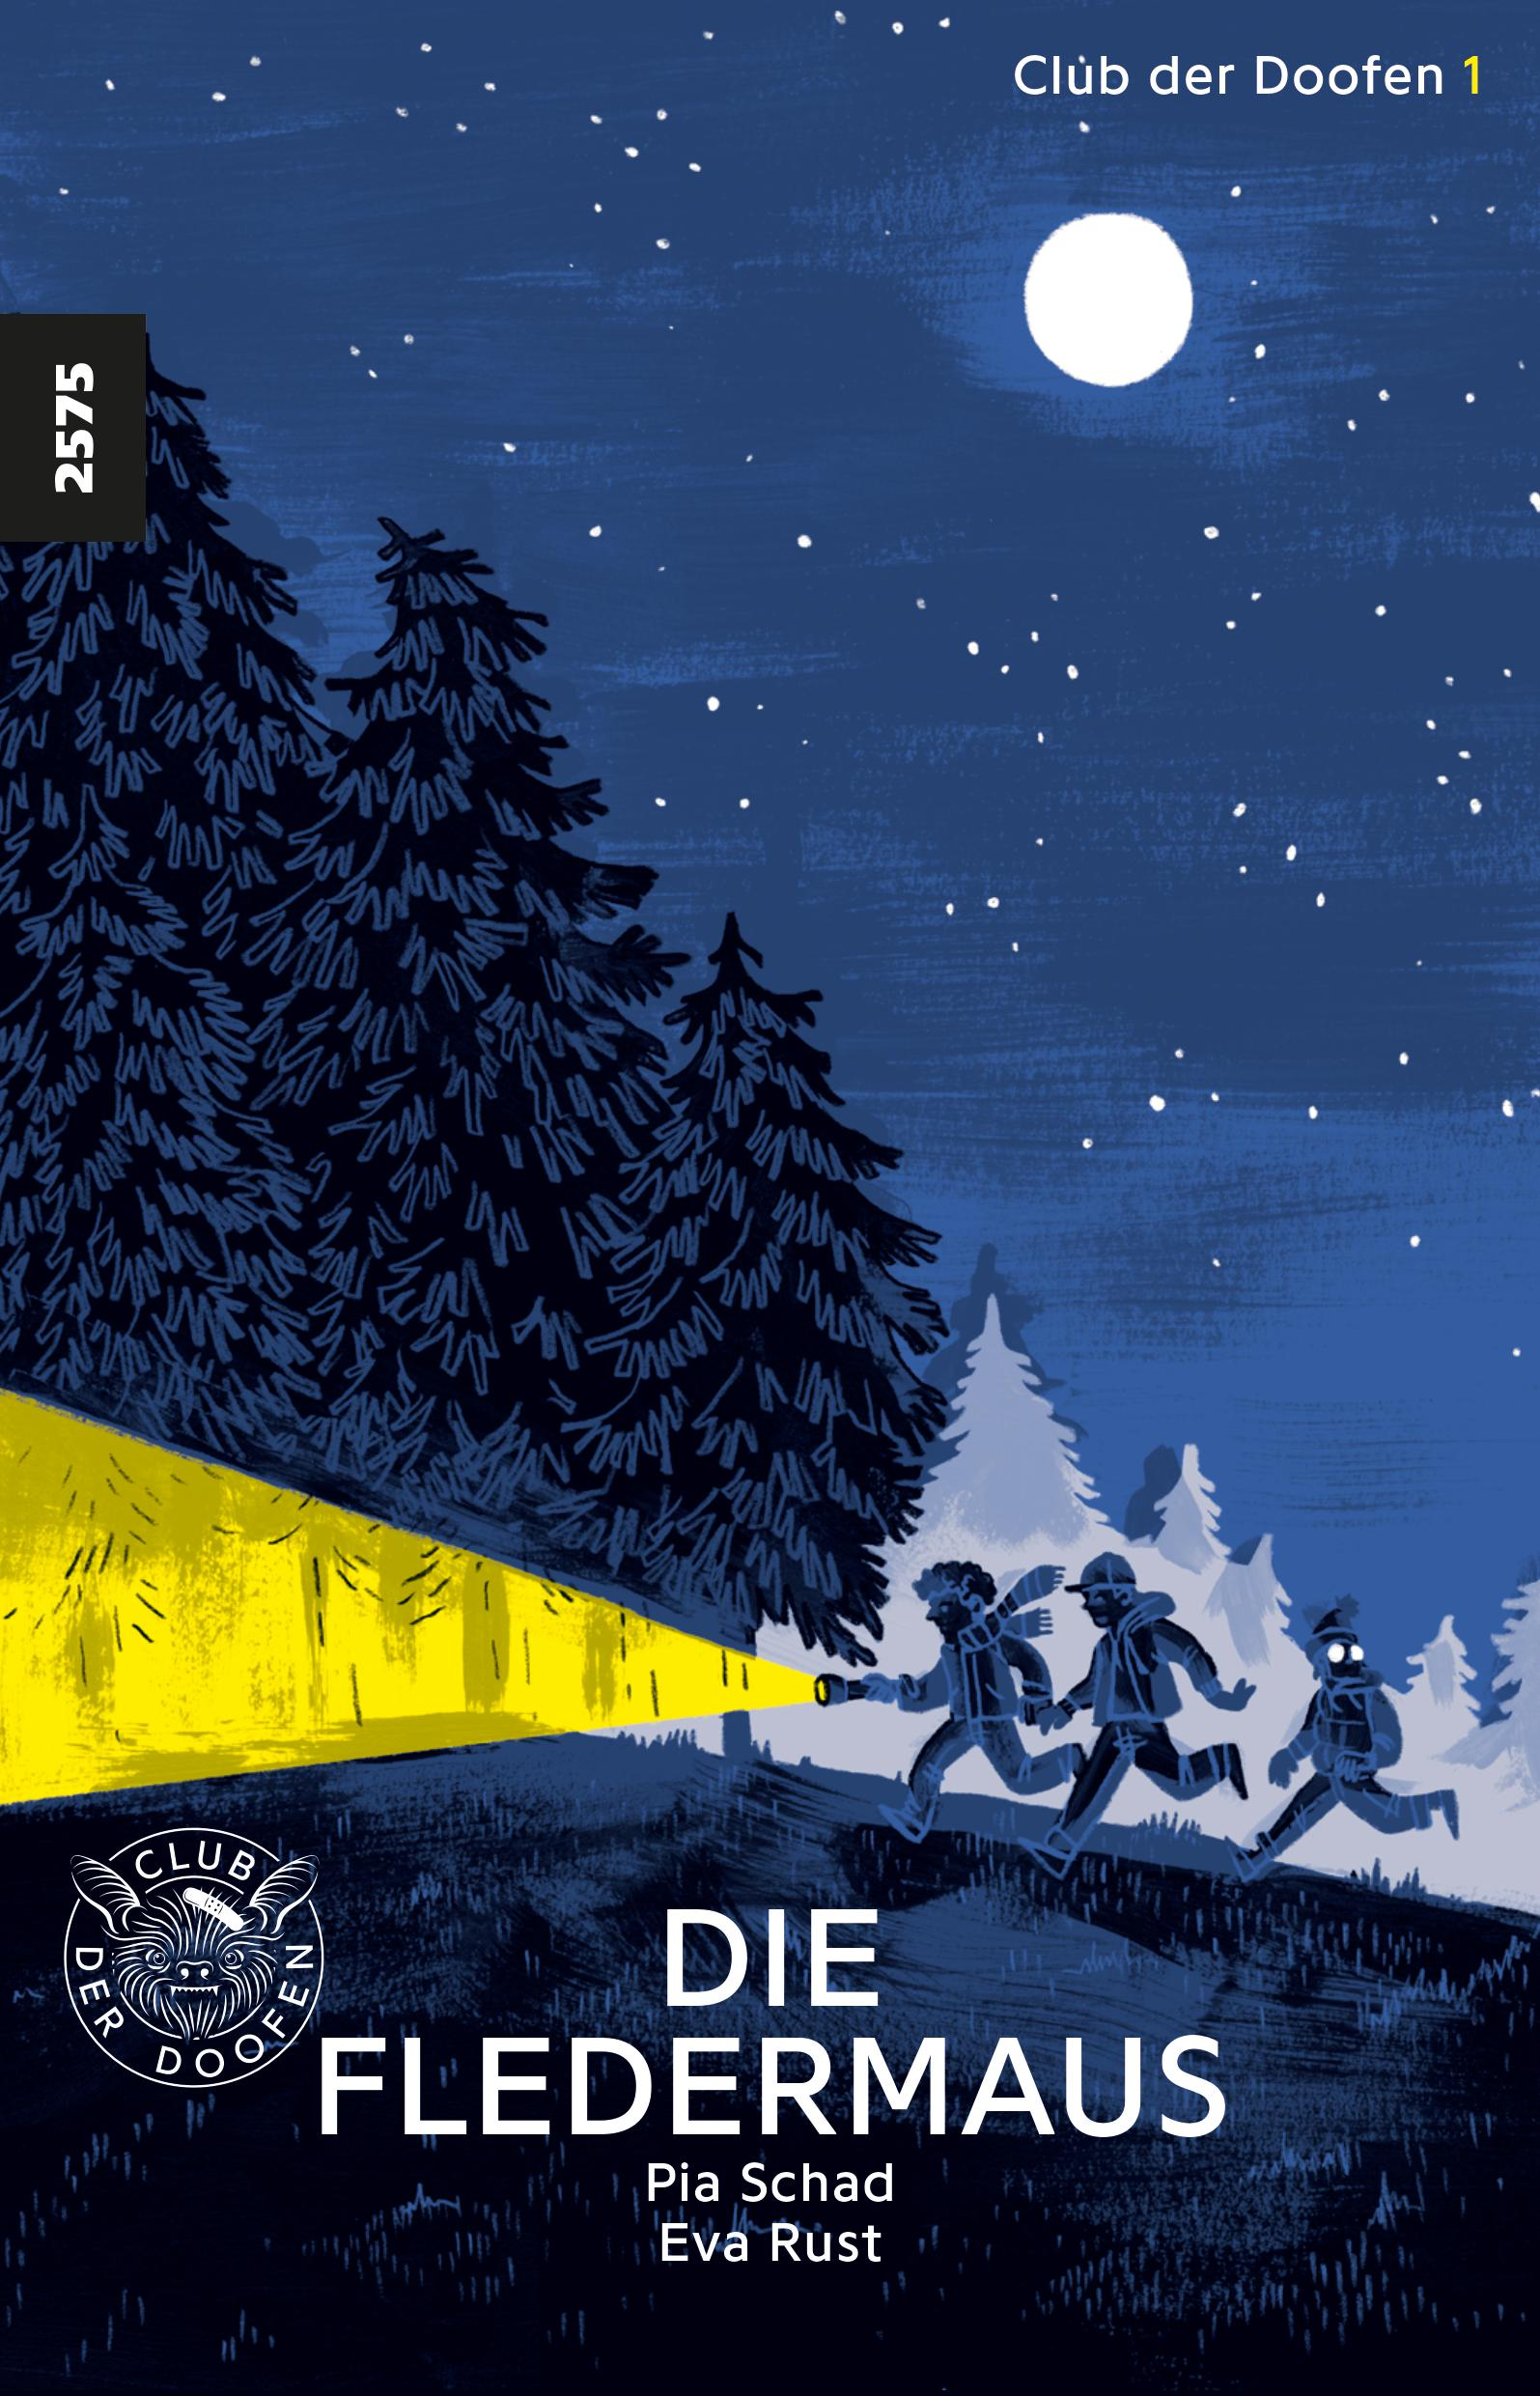 Preview image for LOM object Die Fledermaus - Club der Doofen 1